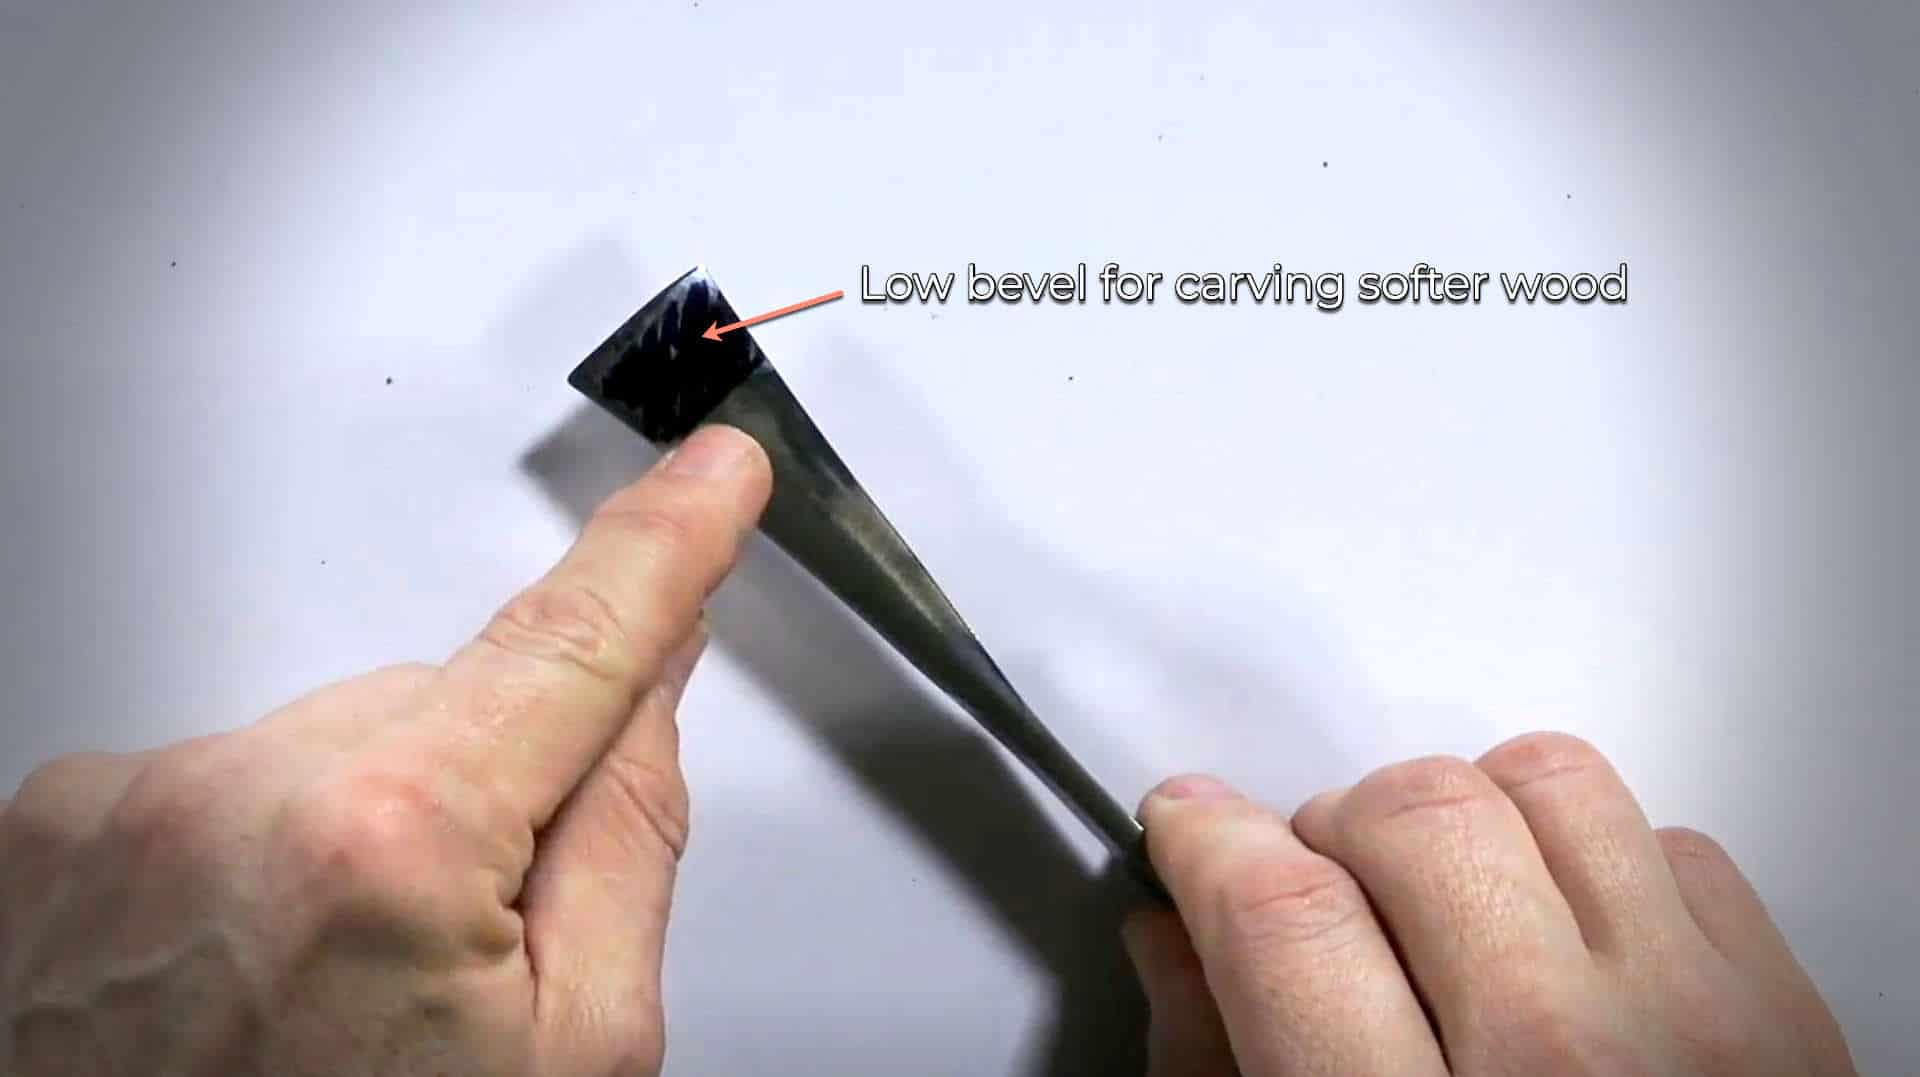 Low bevel of woodcarving tool for carving softer wood like basswood or aspen